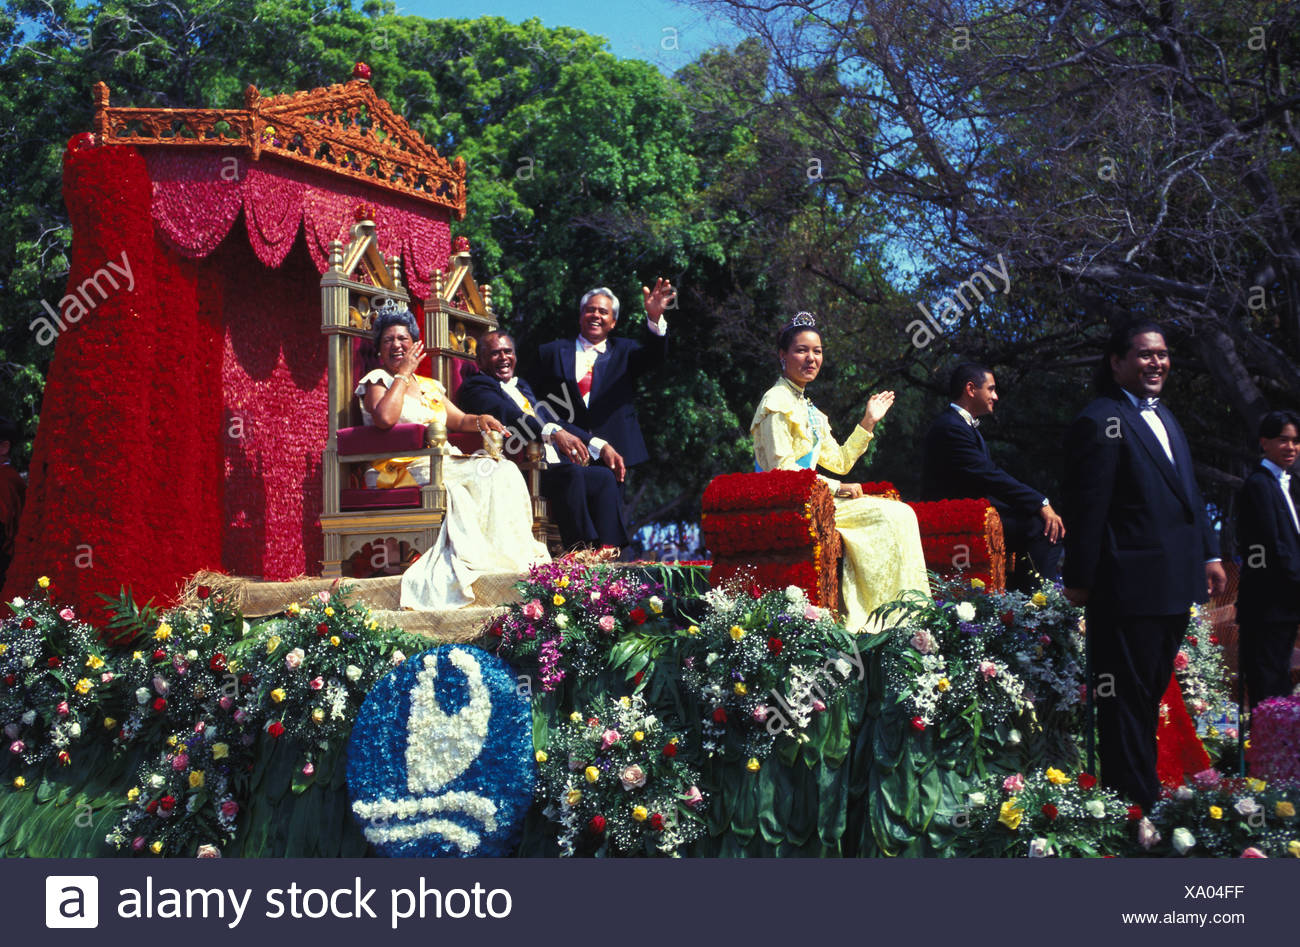 royal court float in the aloha festivals parade a yearly event in